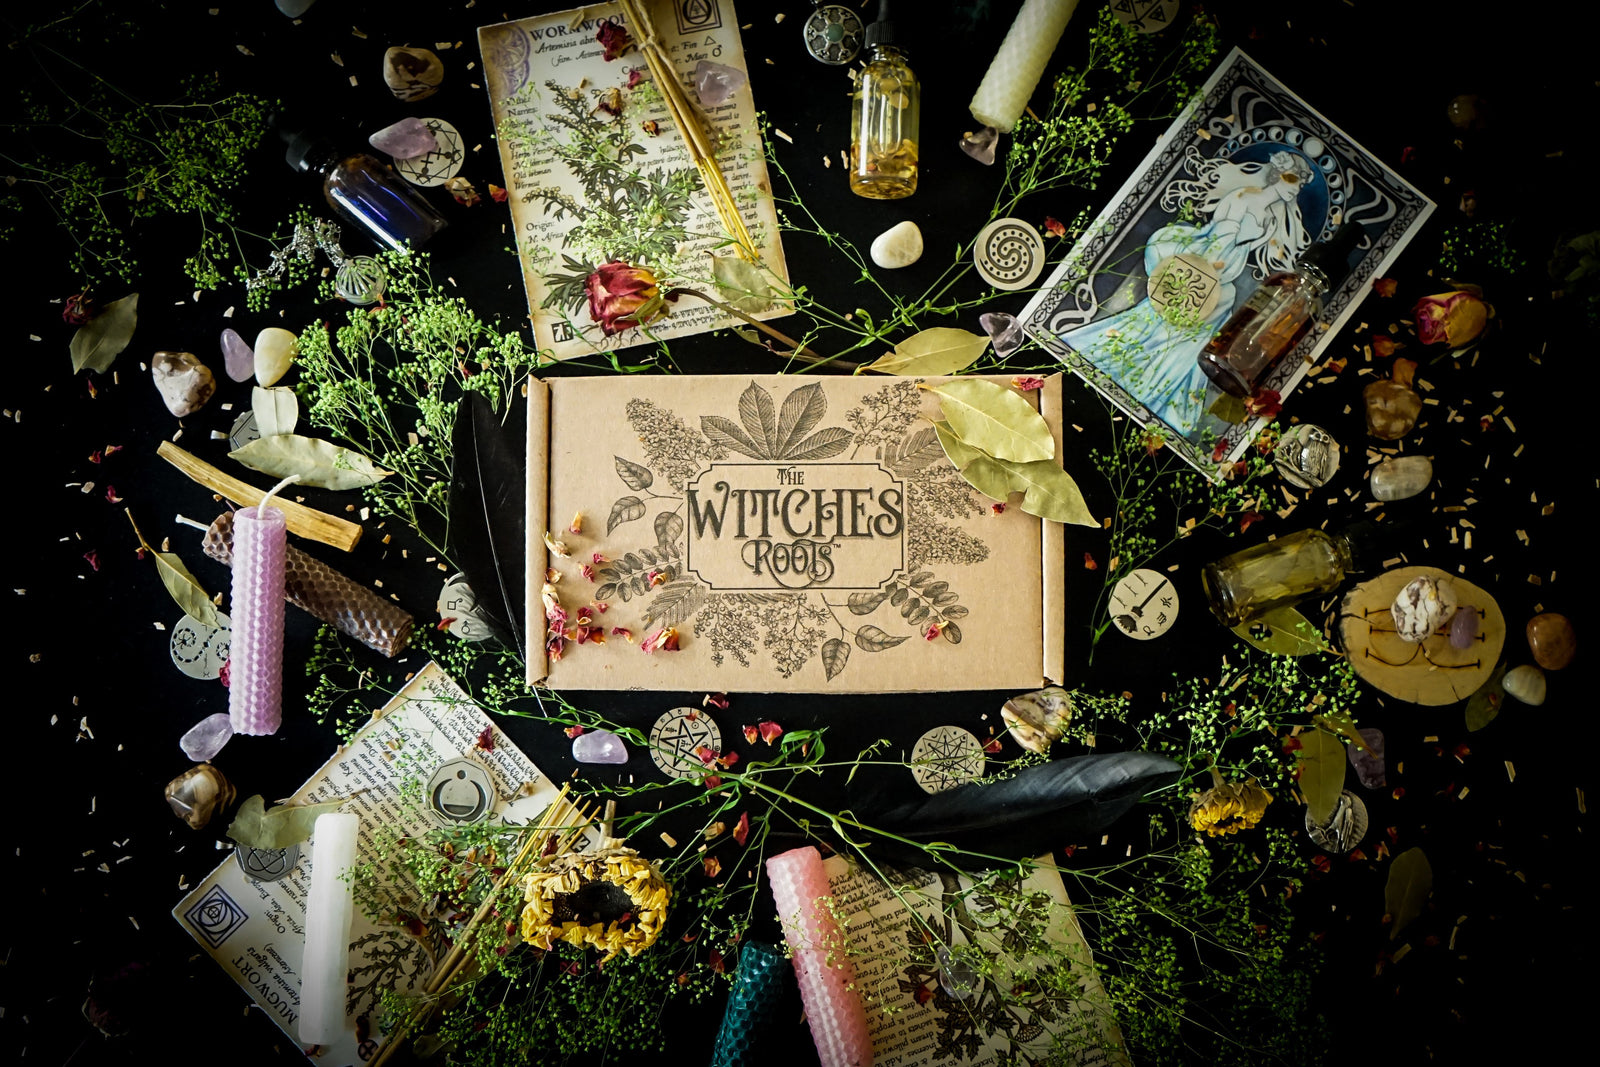 The Witches Roots™ - January 2019 - One Time Purchase (United States)